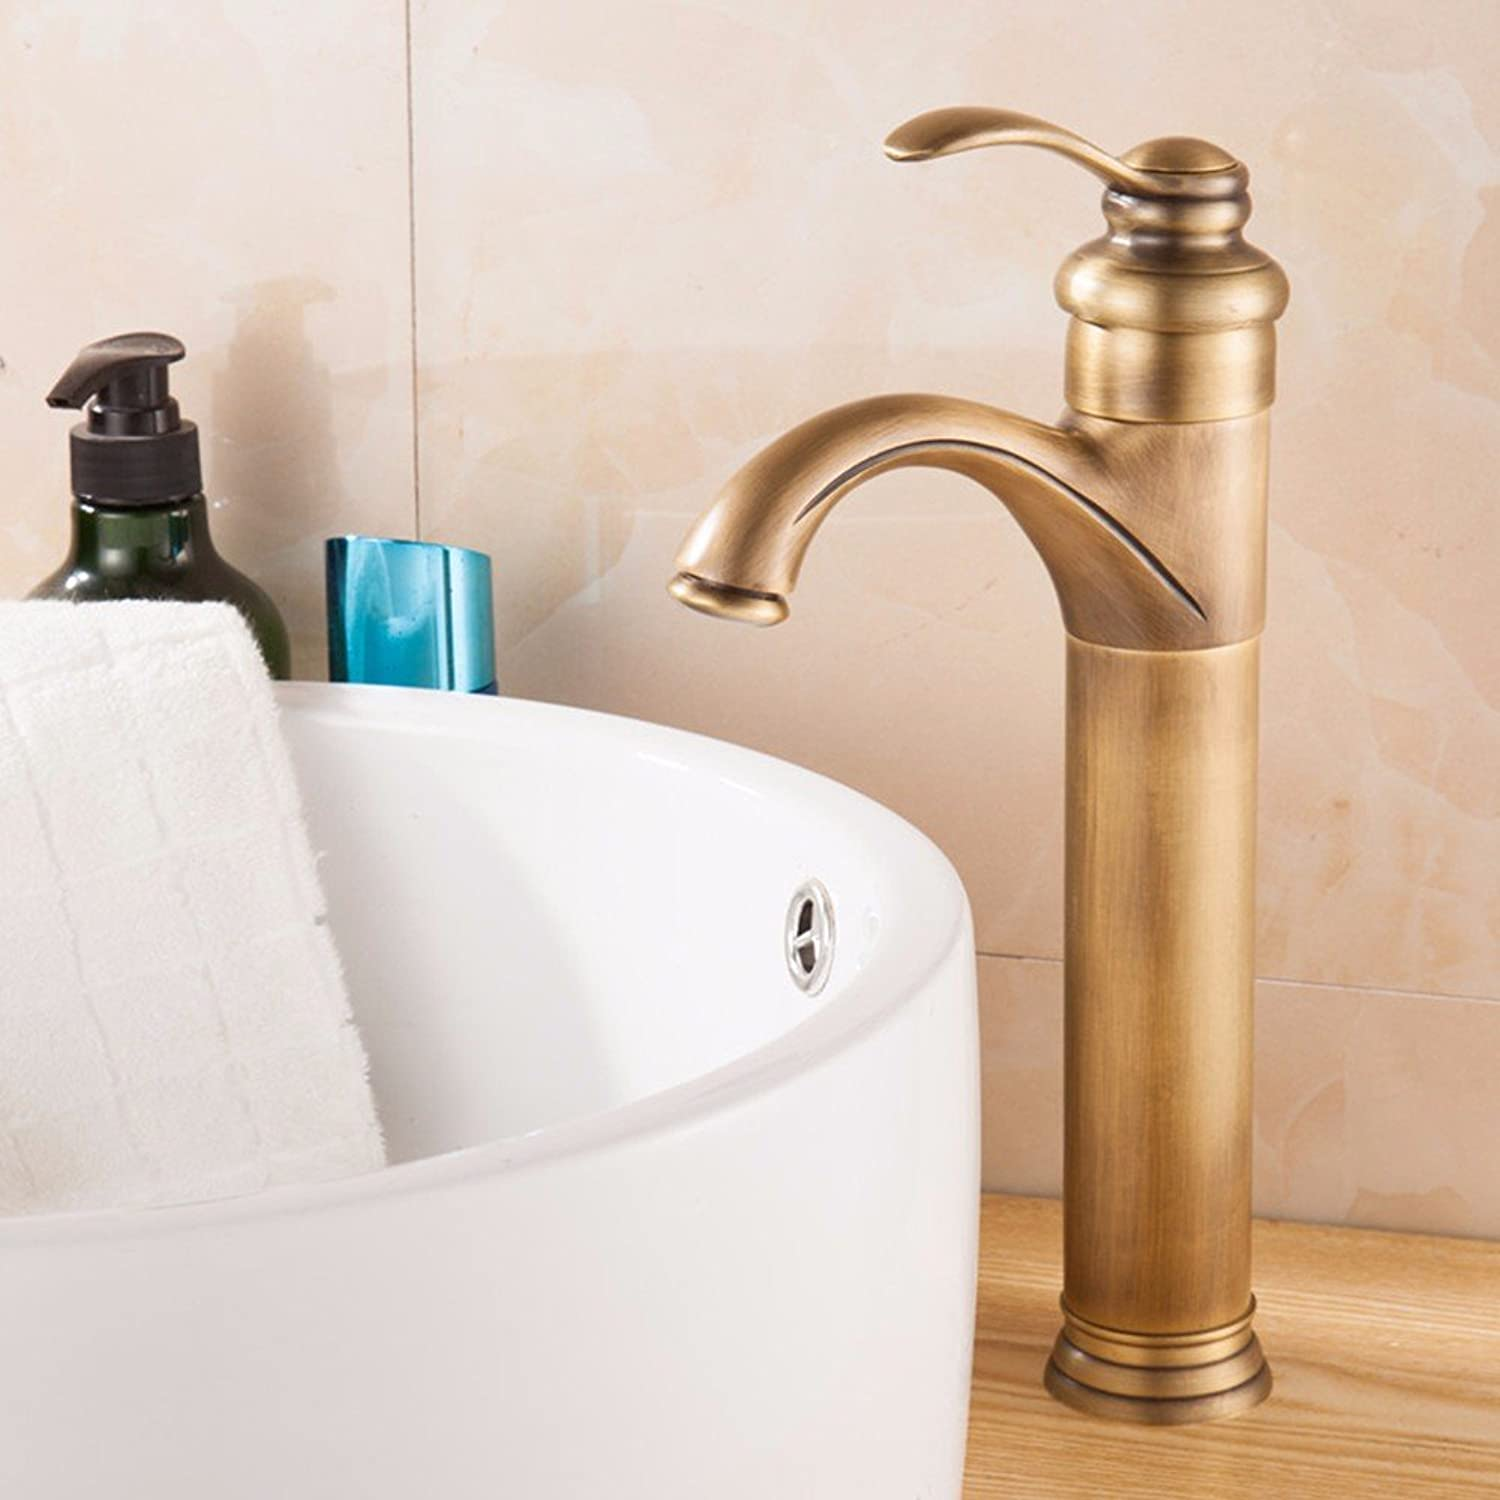 Hlluya Professional Sink Mixer Tap Kitchen Faucet Copper, cold and hot, Single Hole, bath, basin, plus high, sink and faucet